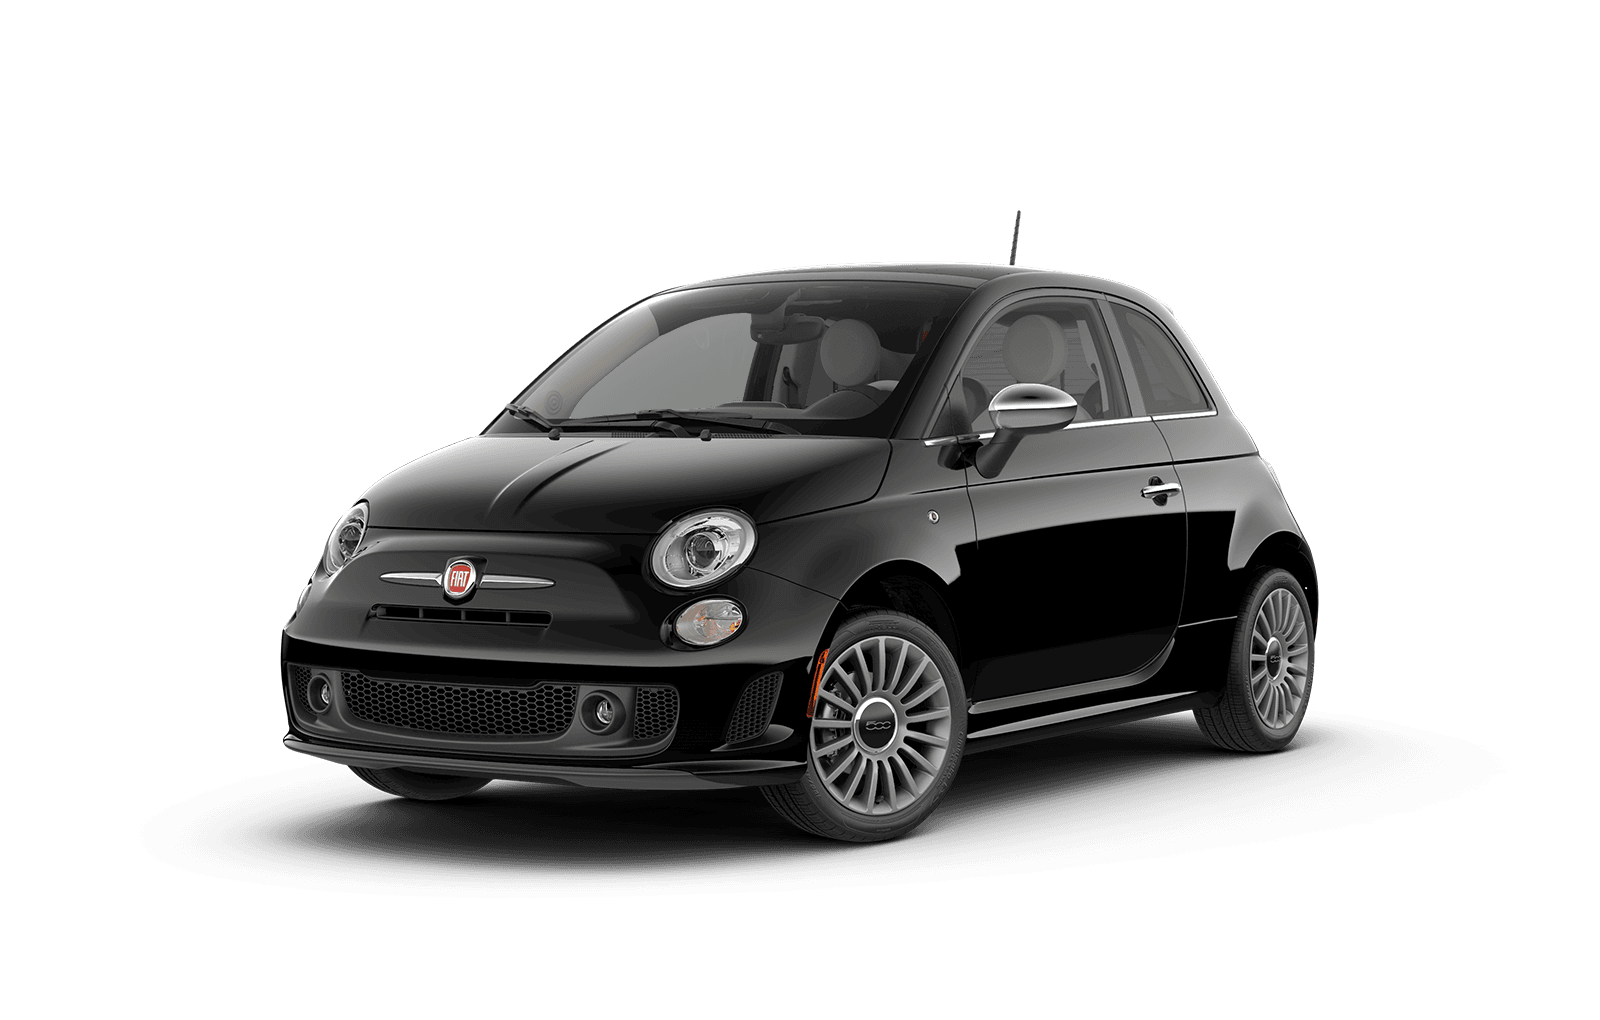 2019 FIAT 500 Full View in Black with Wheels